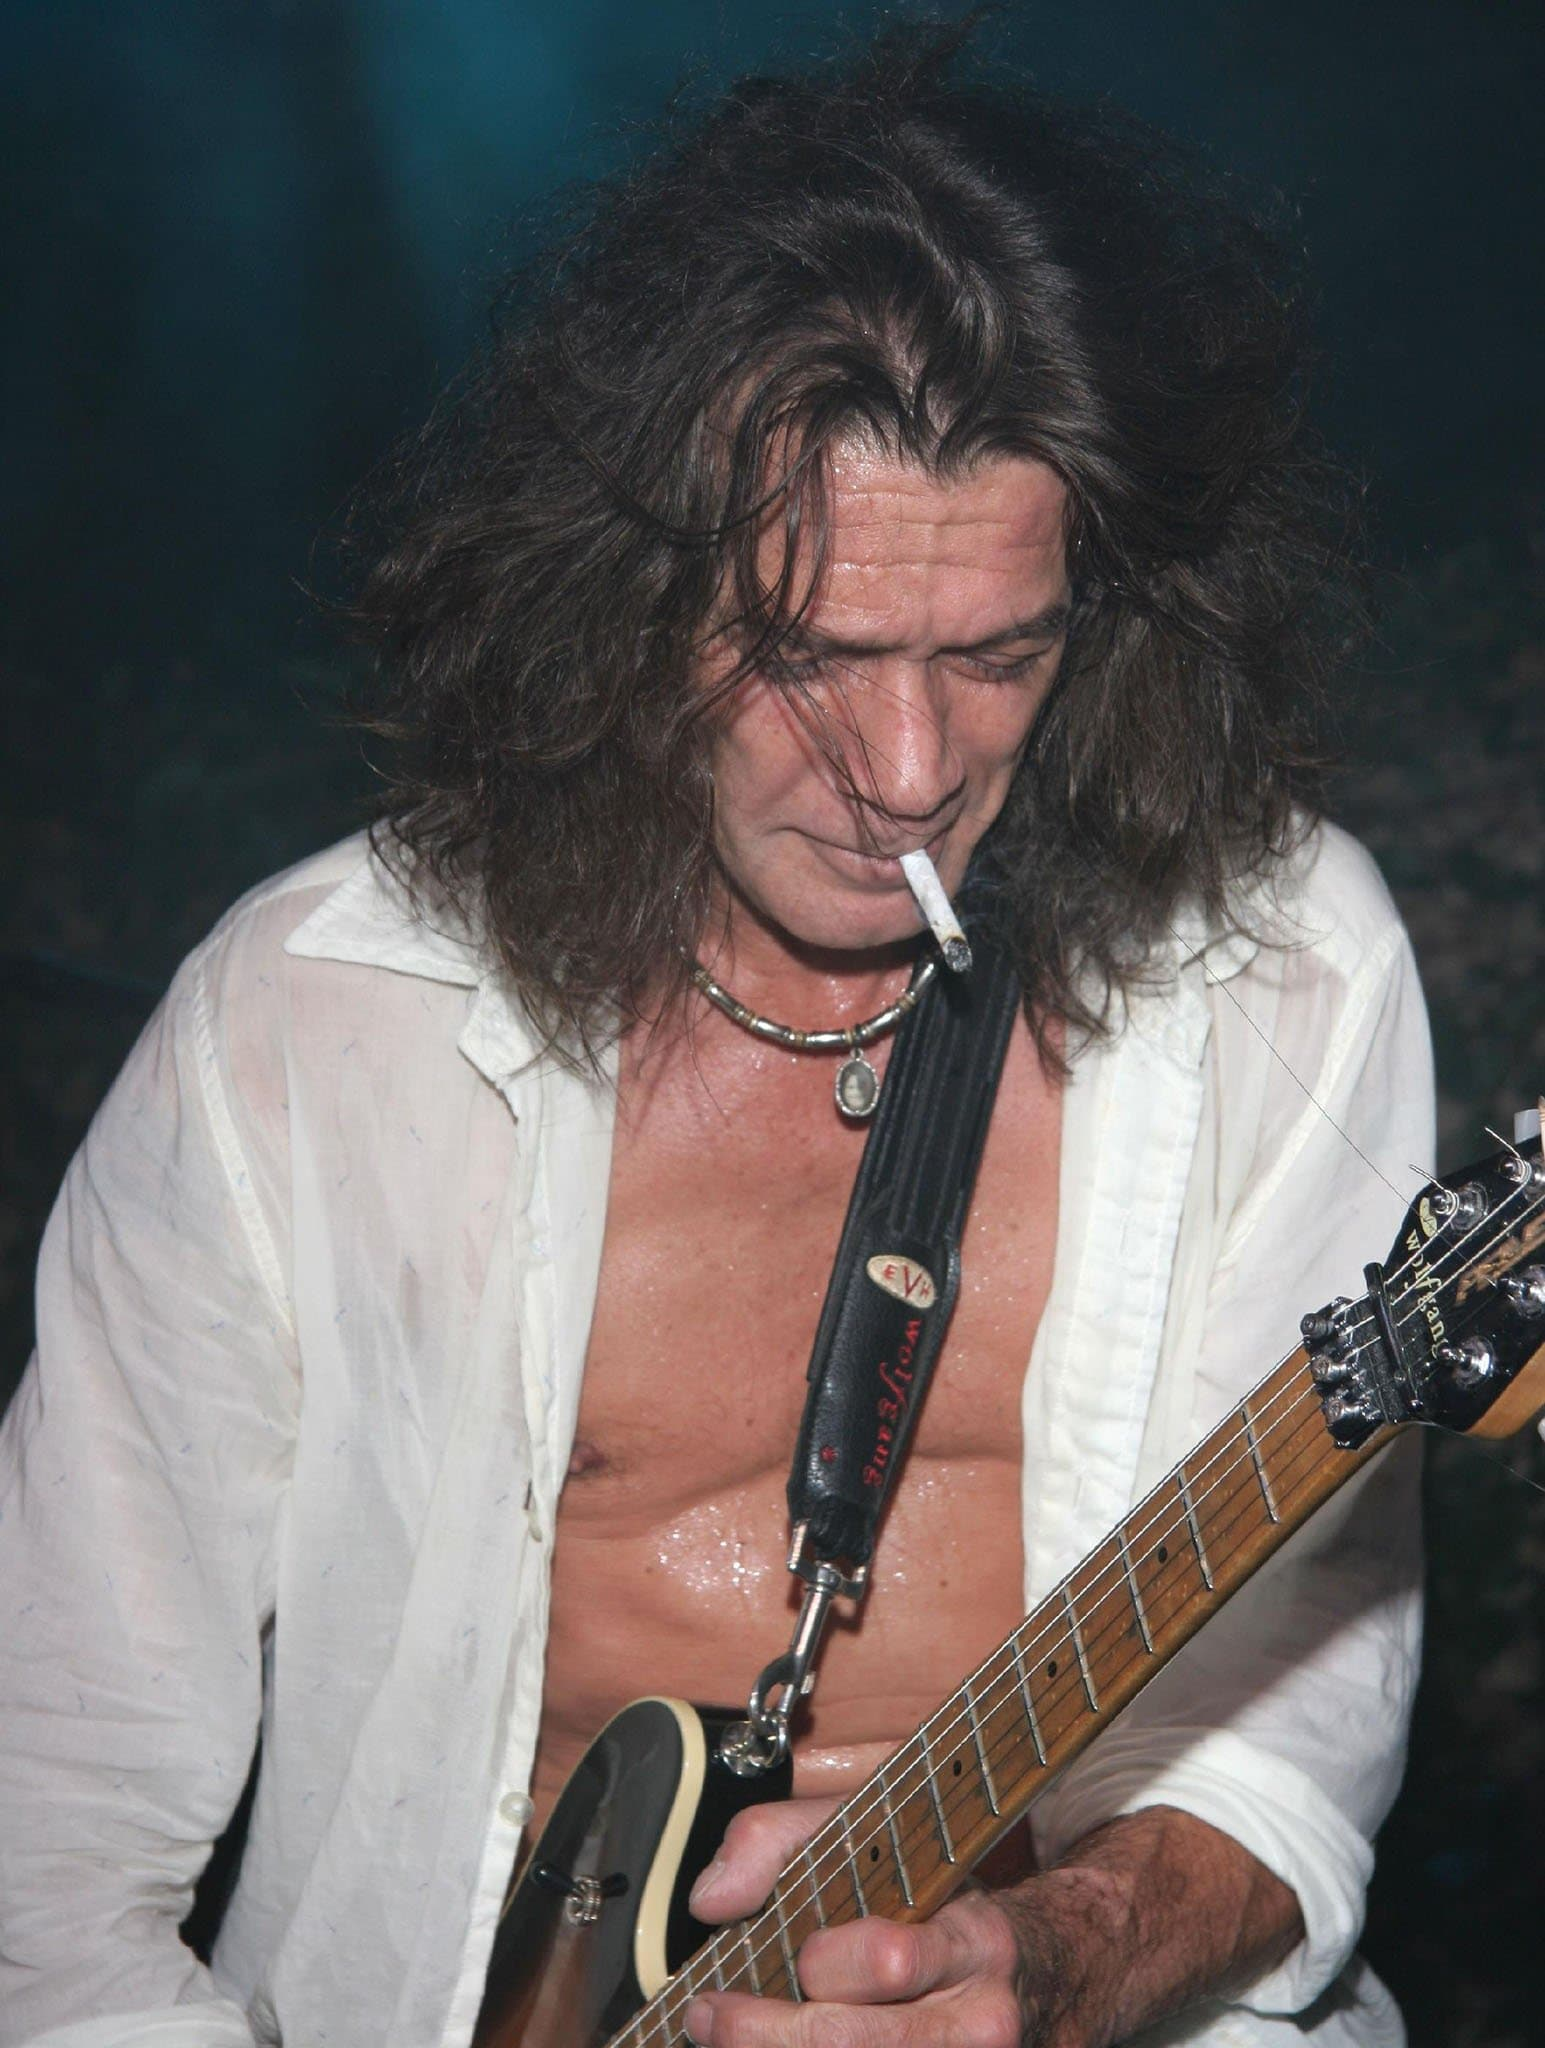 Eddie Van Halen believed that the metal picks he always had in his mouth, in addition to heavy cigarette, alcohol, and drug use, caused his cancer